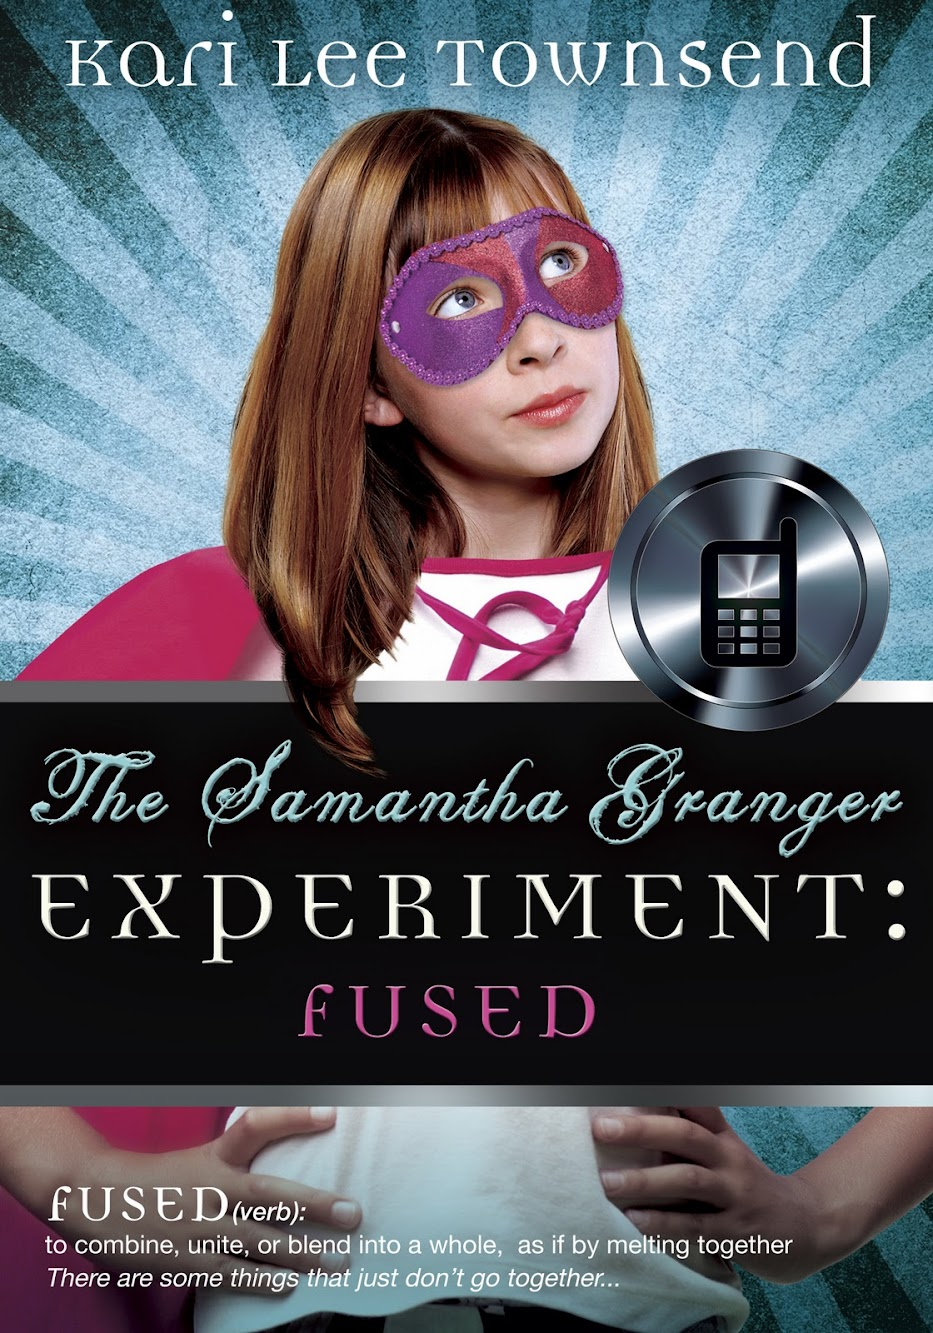 Review: The Samantha Granger Experiment: Fused by Kari Lee Townsend